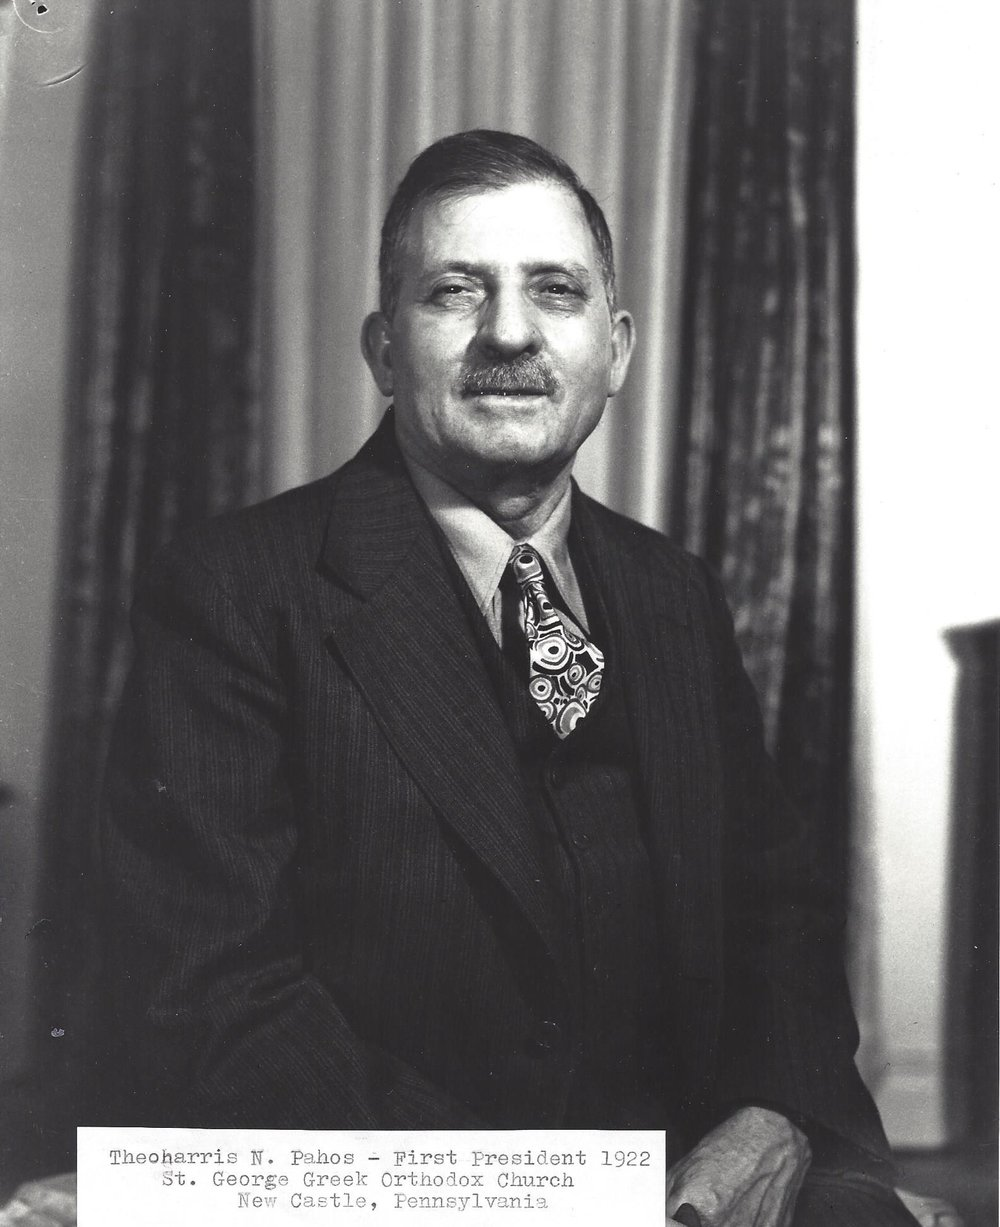 Theoharris N. Pahos - First Parish Council President 1922